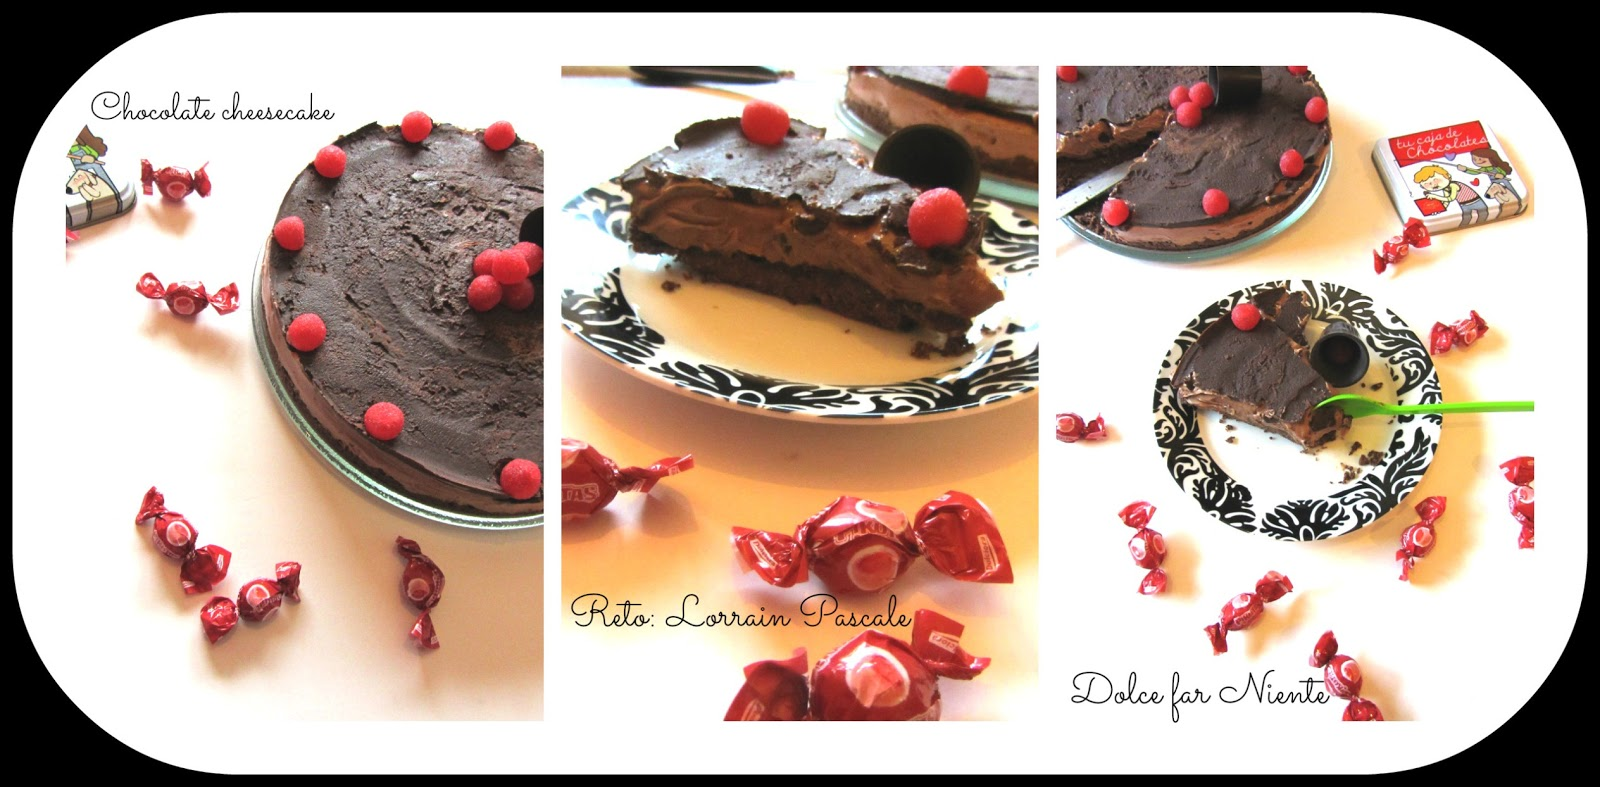 Canal Cocina Lorraine Pascale Dolce Far Niente Chocolate Chesscake Reto Lorraine Pascale